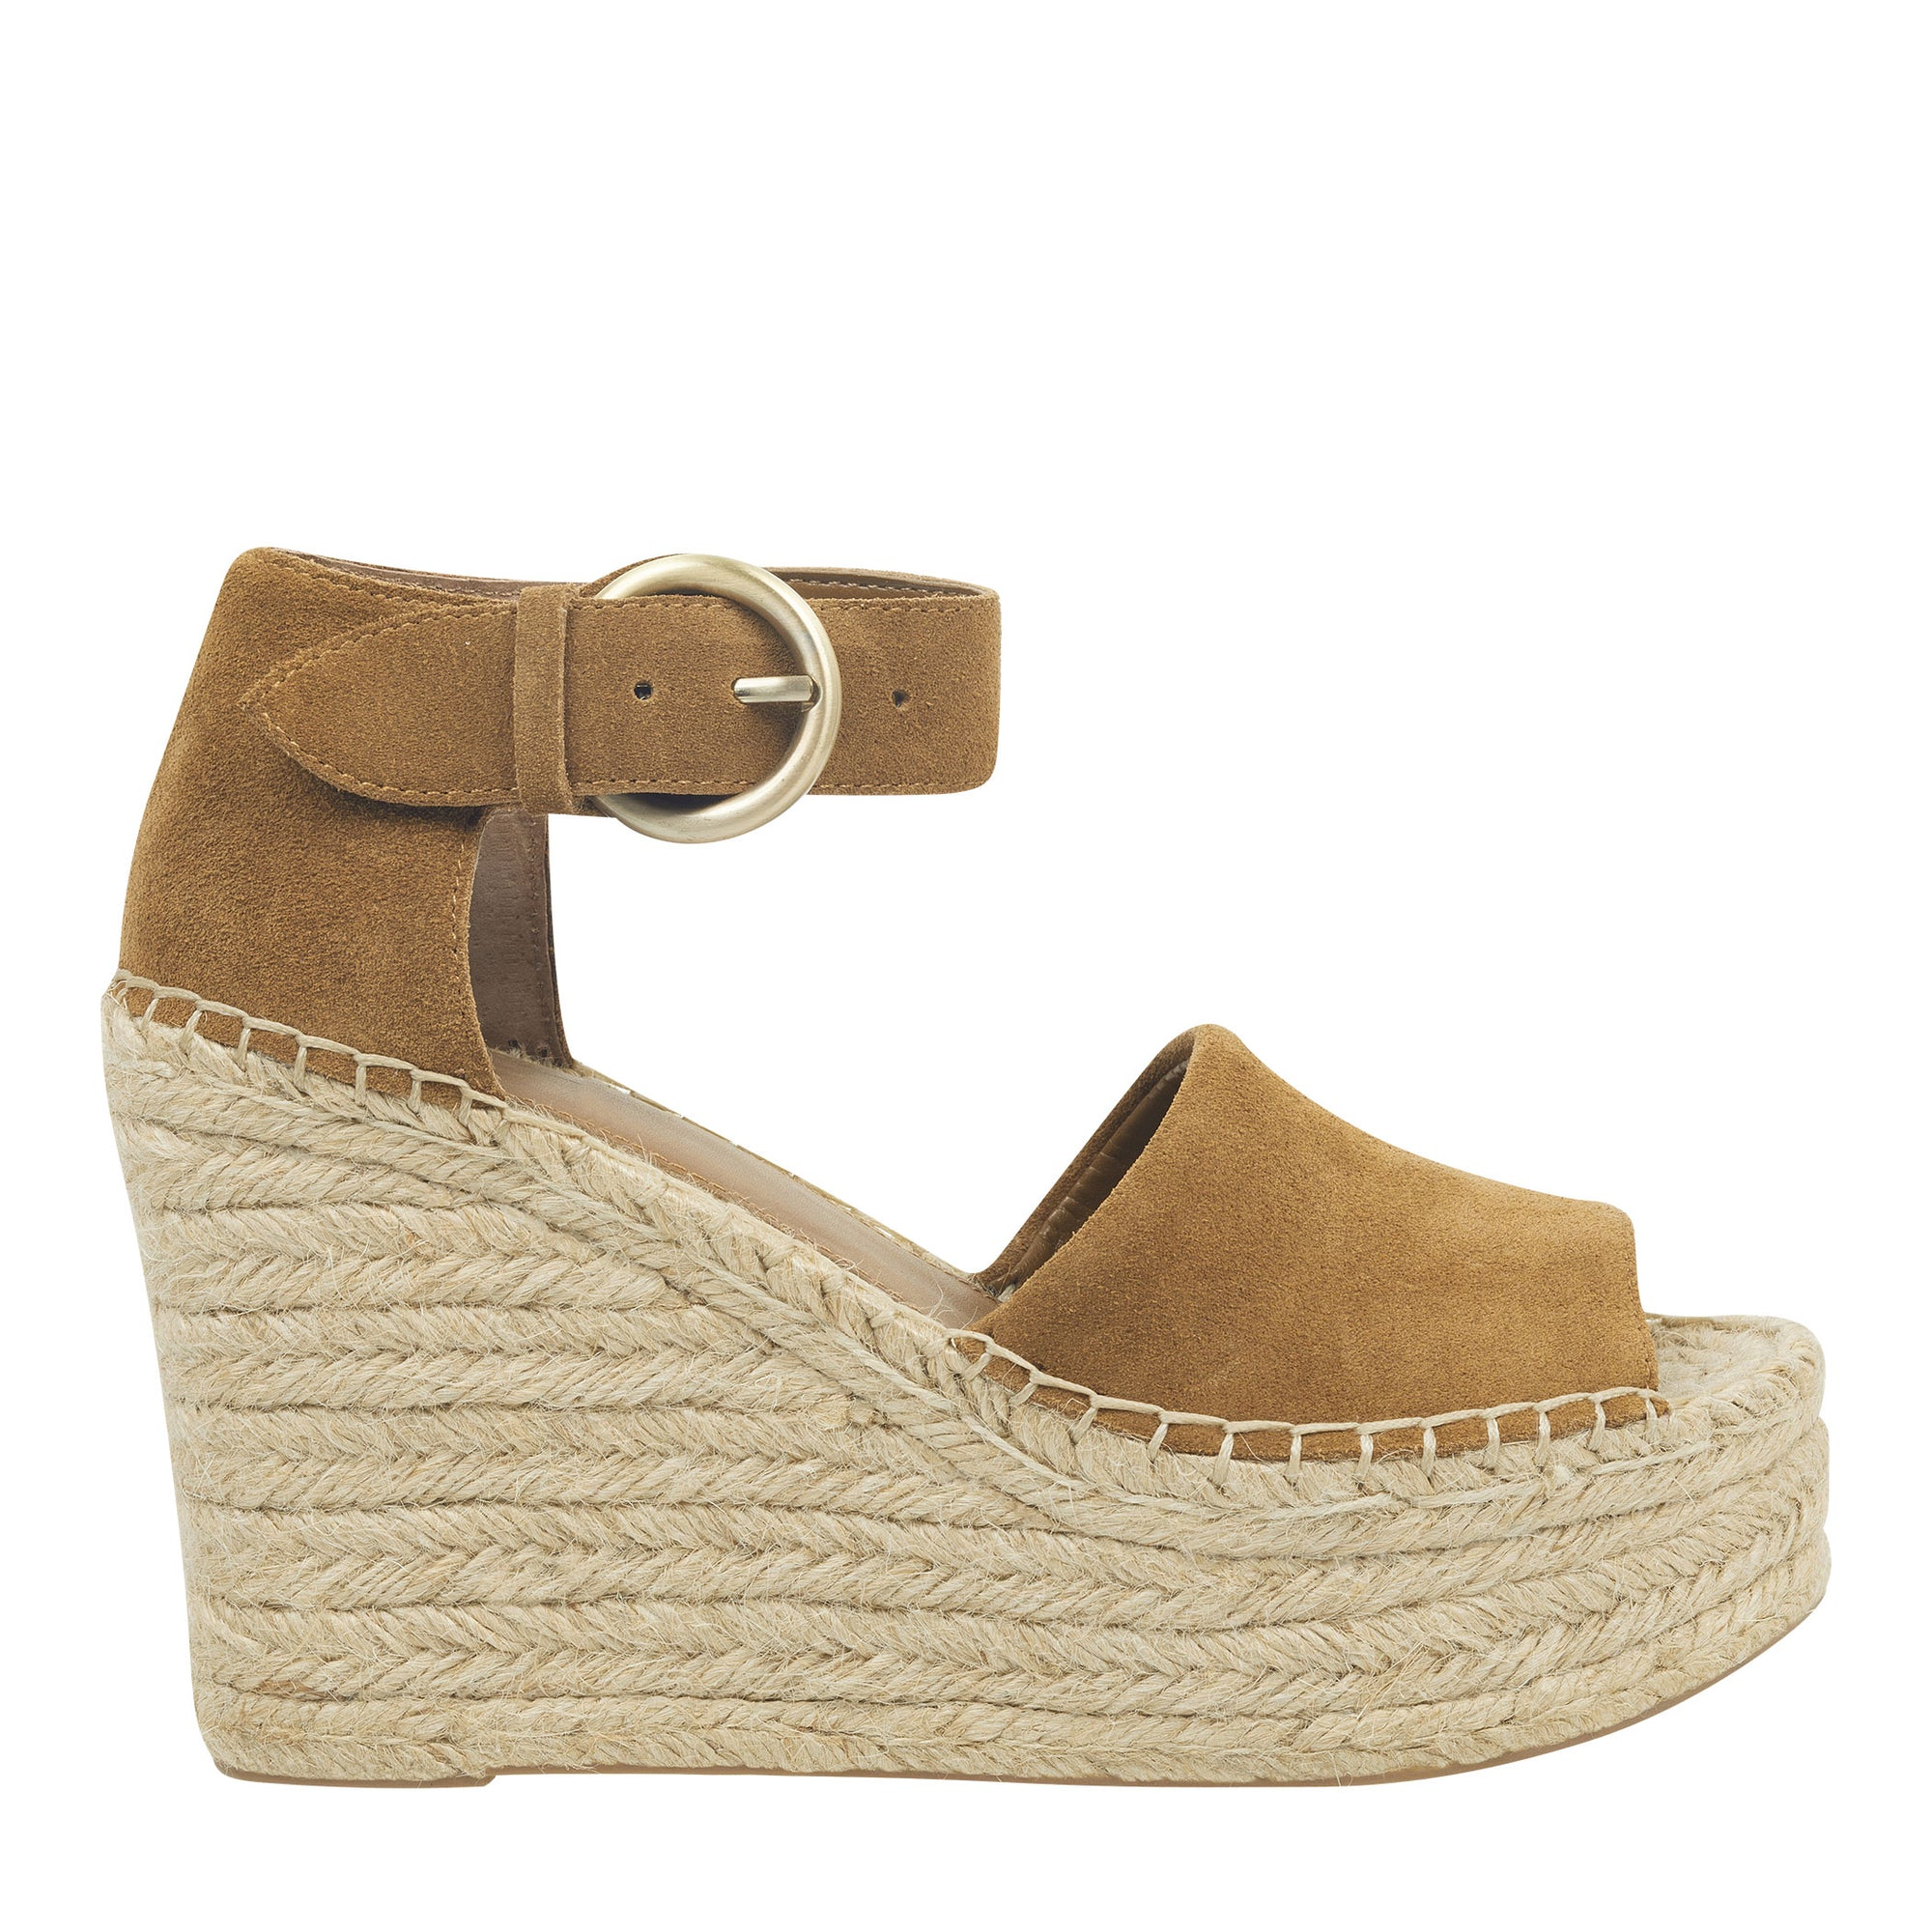 alida-espadrille-wedge-sandal-in-brown-suede